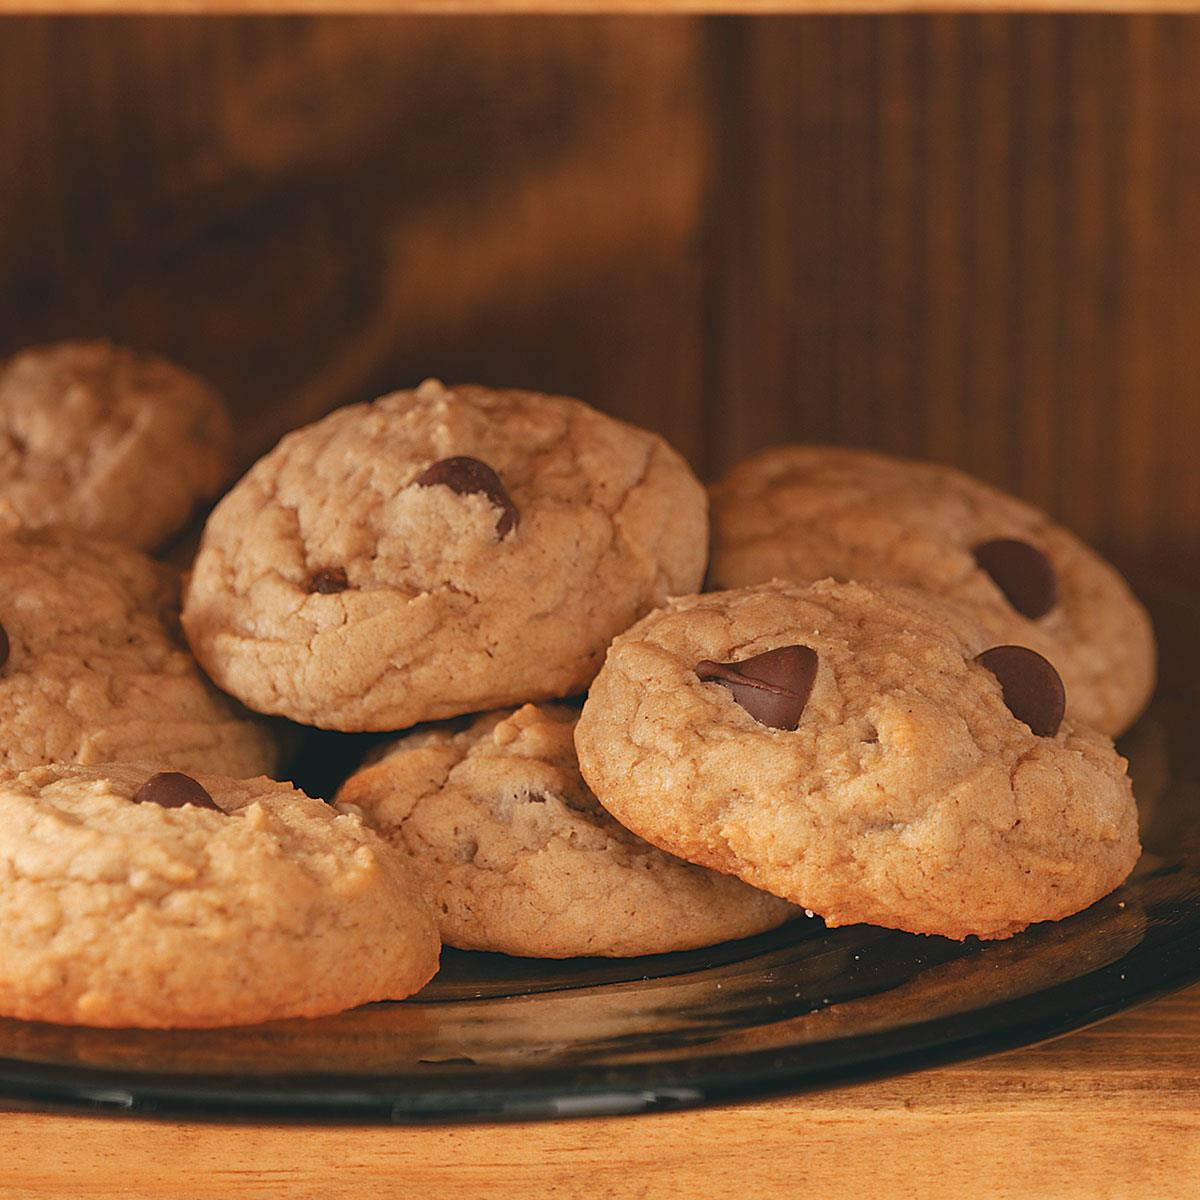 Healthy Peanut Butter Chocolate Chip Cookies  Healthy Peanut Butter Chocolate Chip Cookies Recipe